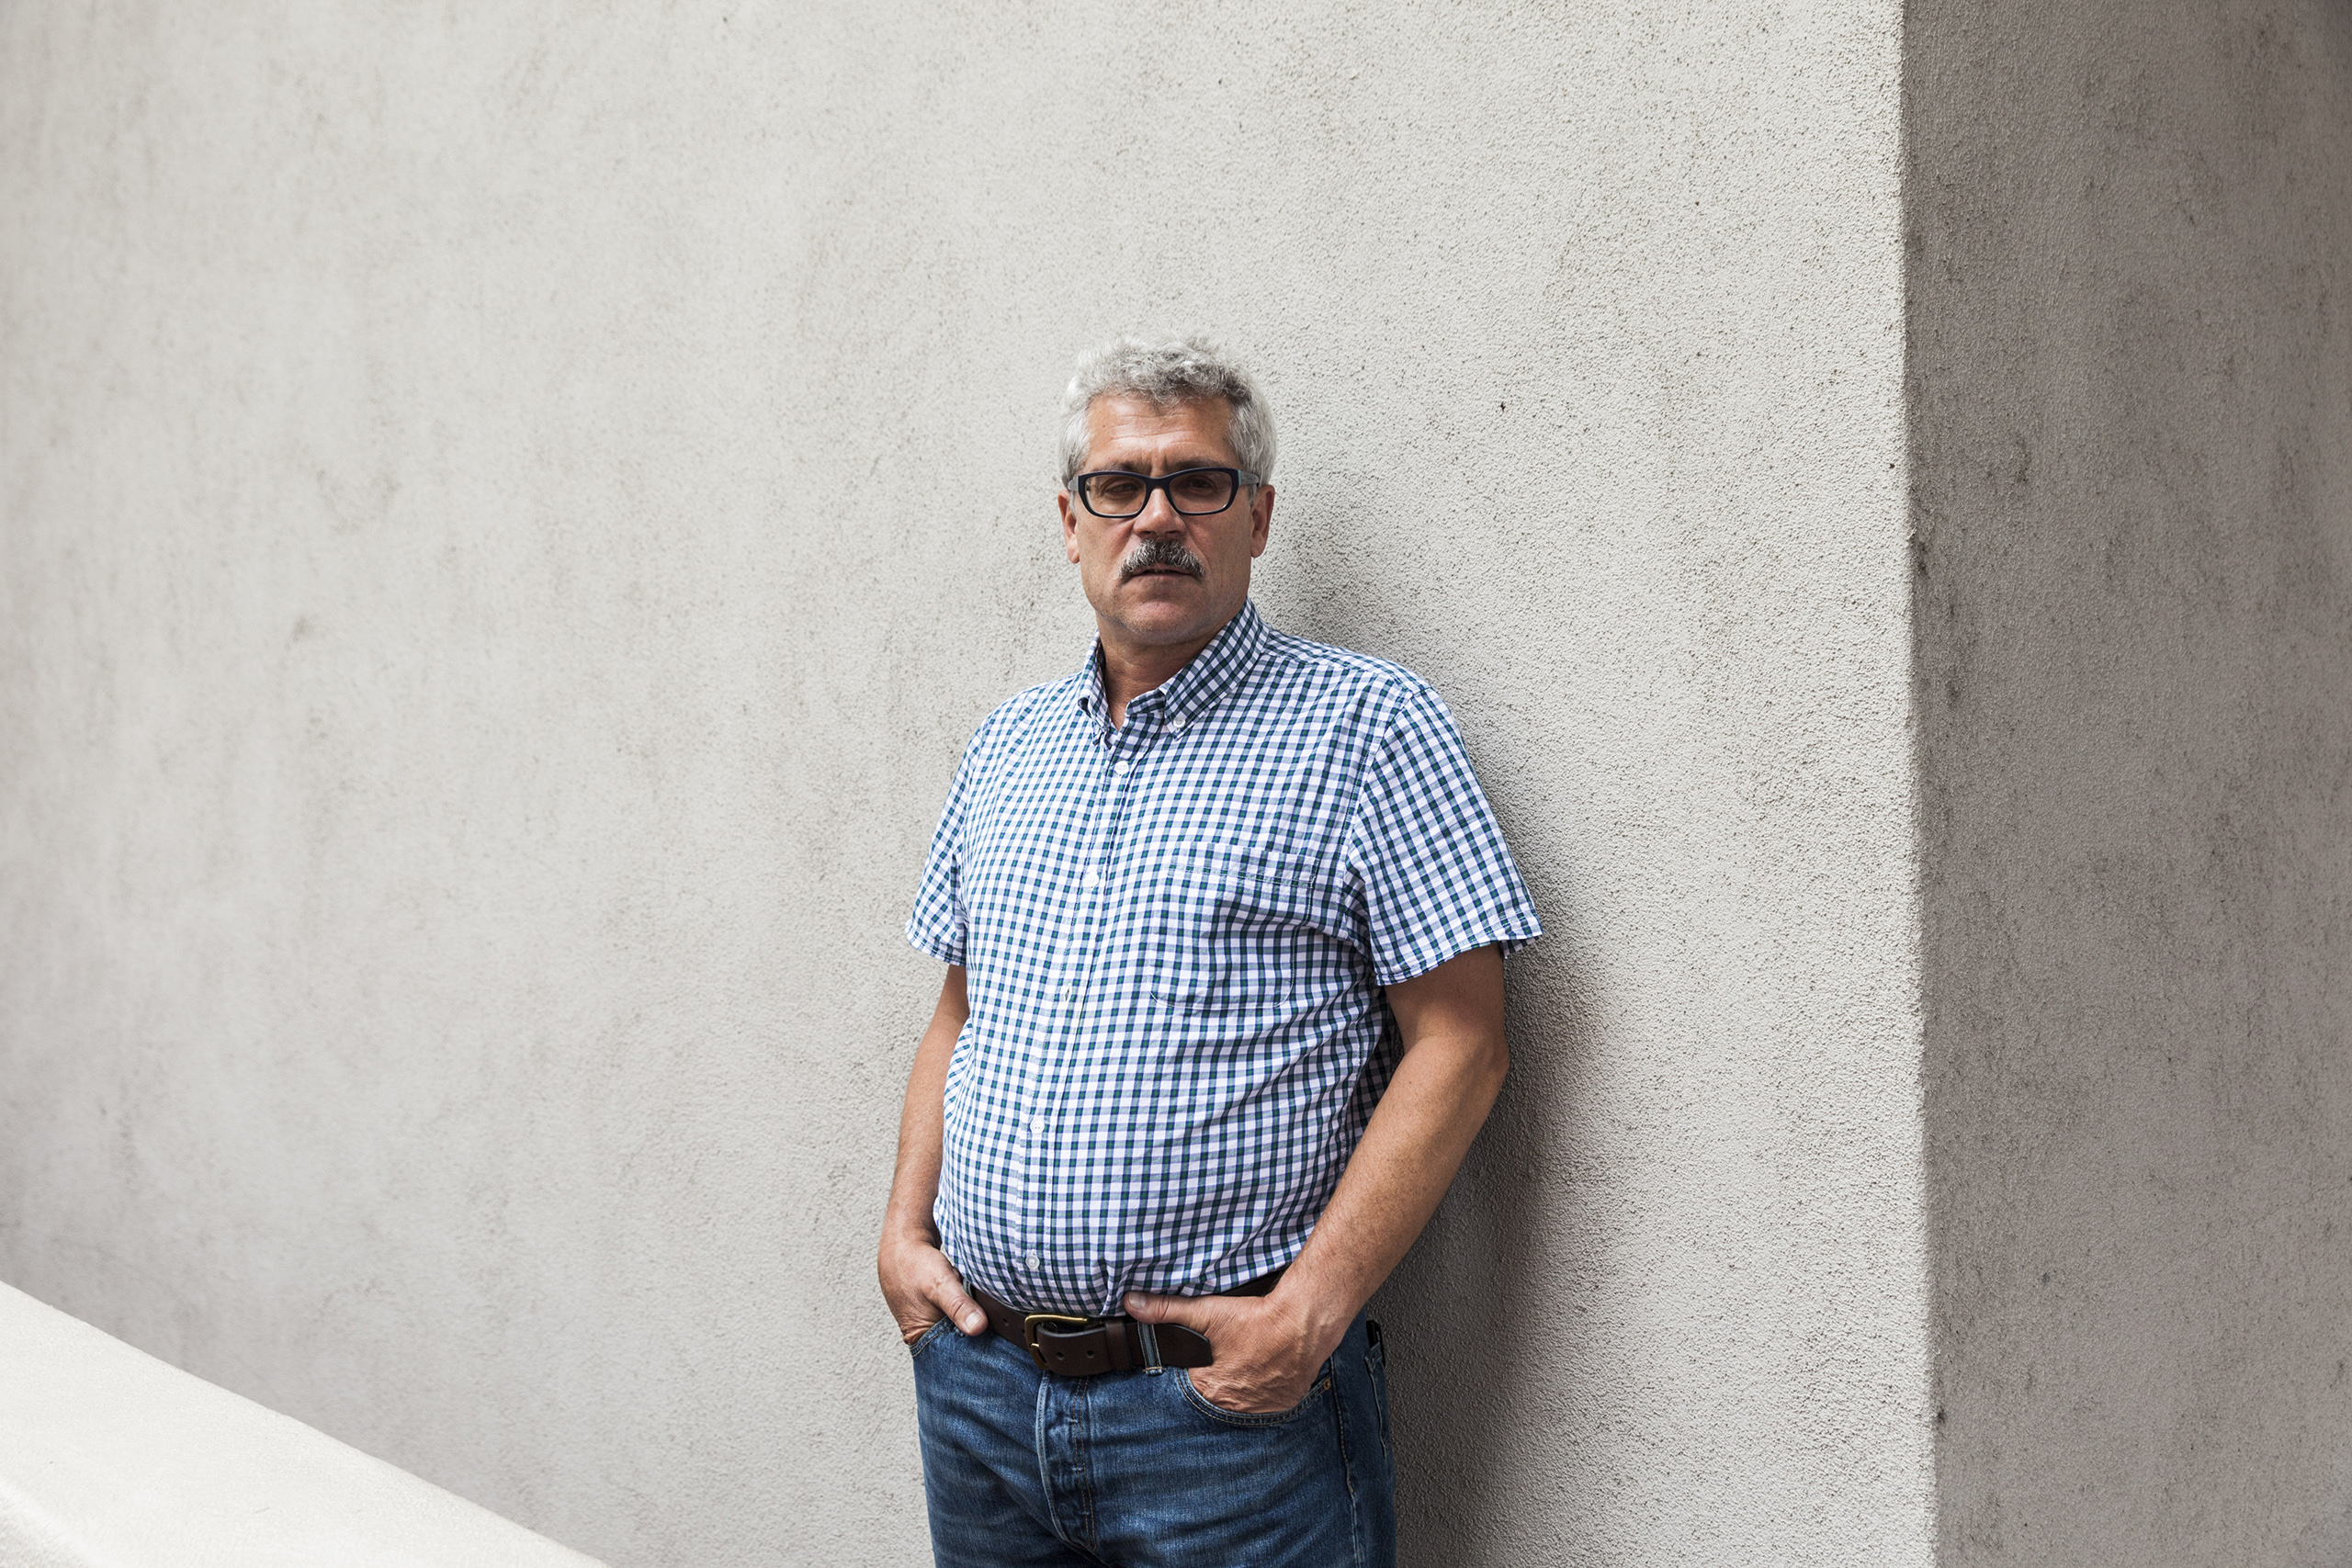 Grigory Rodchenkov, who ran the 2014 Sochi Olympic Games antidoping test laboratory, in Los Angeles, May 5, 2016. Rodchenkov said he developed a three-drug cocktail of banned substances that he provided to dozens of Russian athletes.